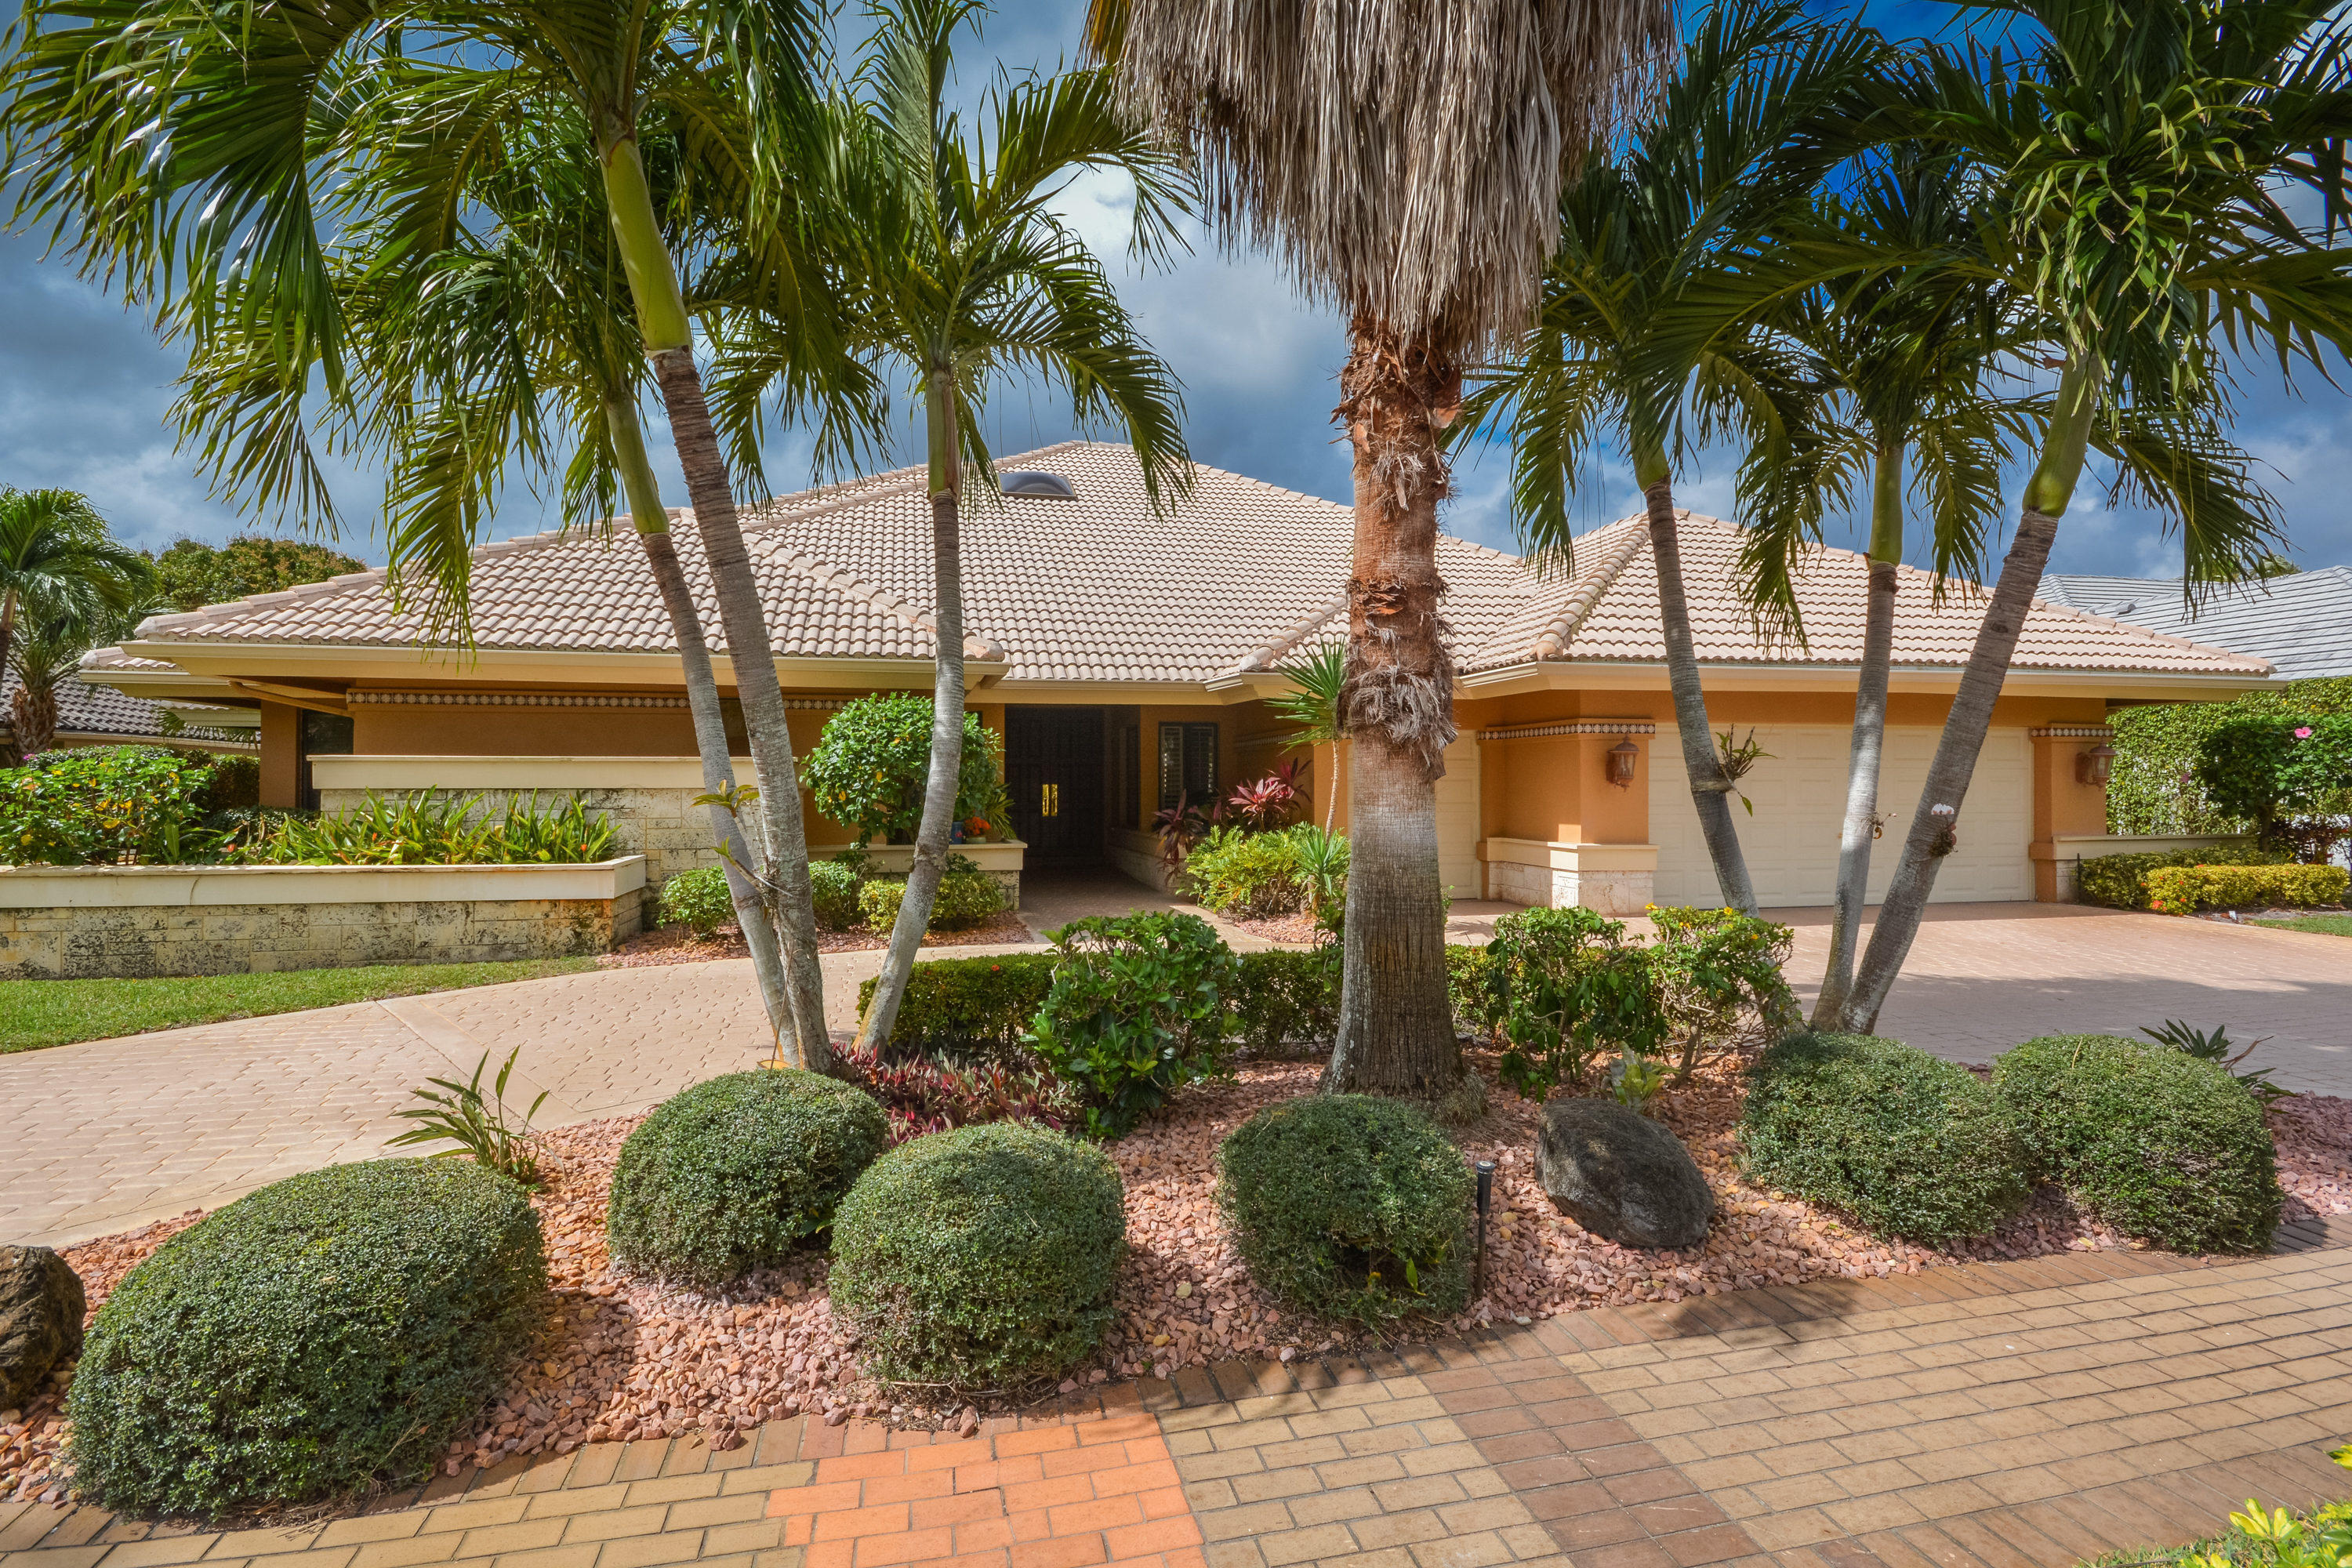 17787 Scarsdale Way, Boca Raton, Florida 33496, 4 Bedrooms Bedrooms, ,4.2 BathroomsBathrooms,Single Family,For Sale,ST ANDREWS COUNTRY CLUB,Scarsdale,RX-10405593